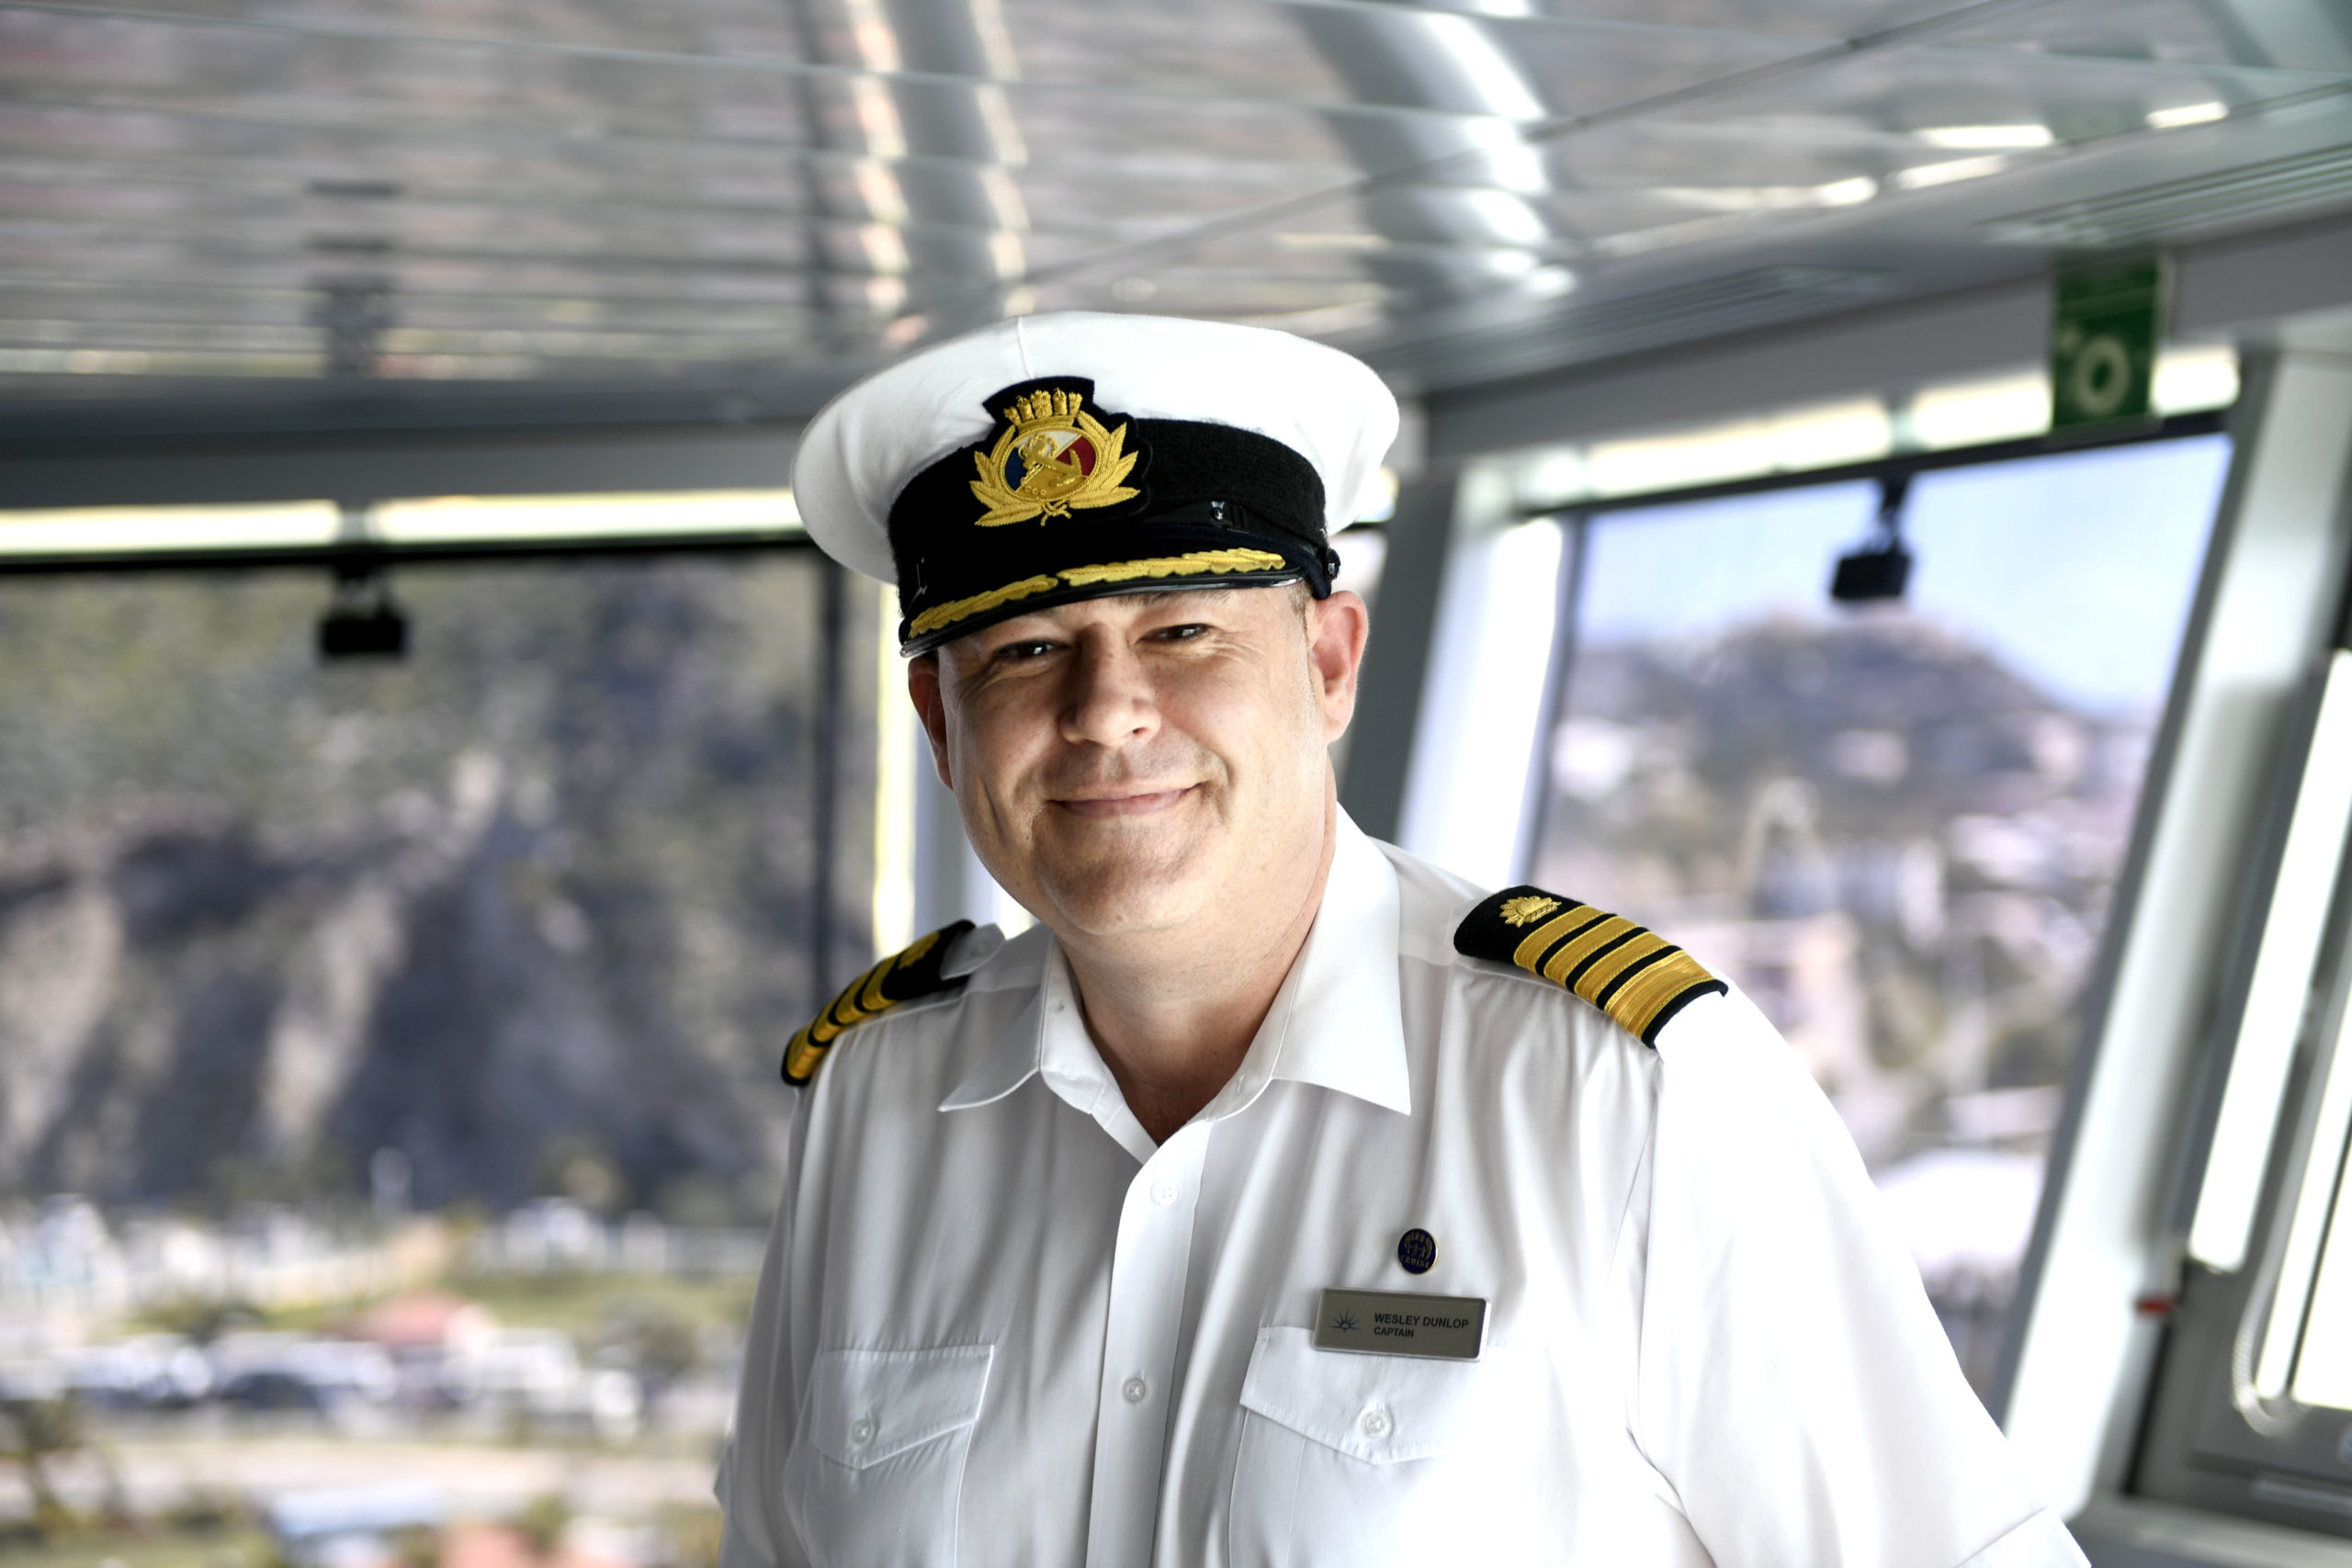 Meet the Captain - www.pocruises.com